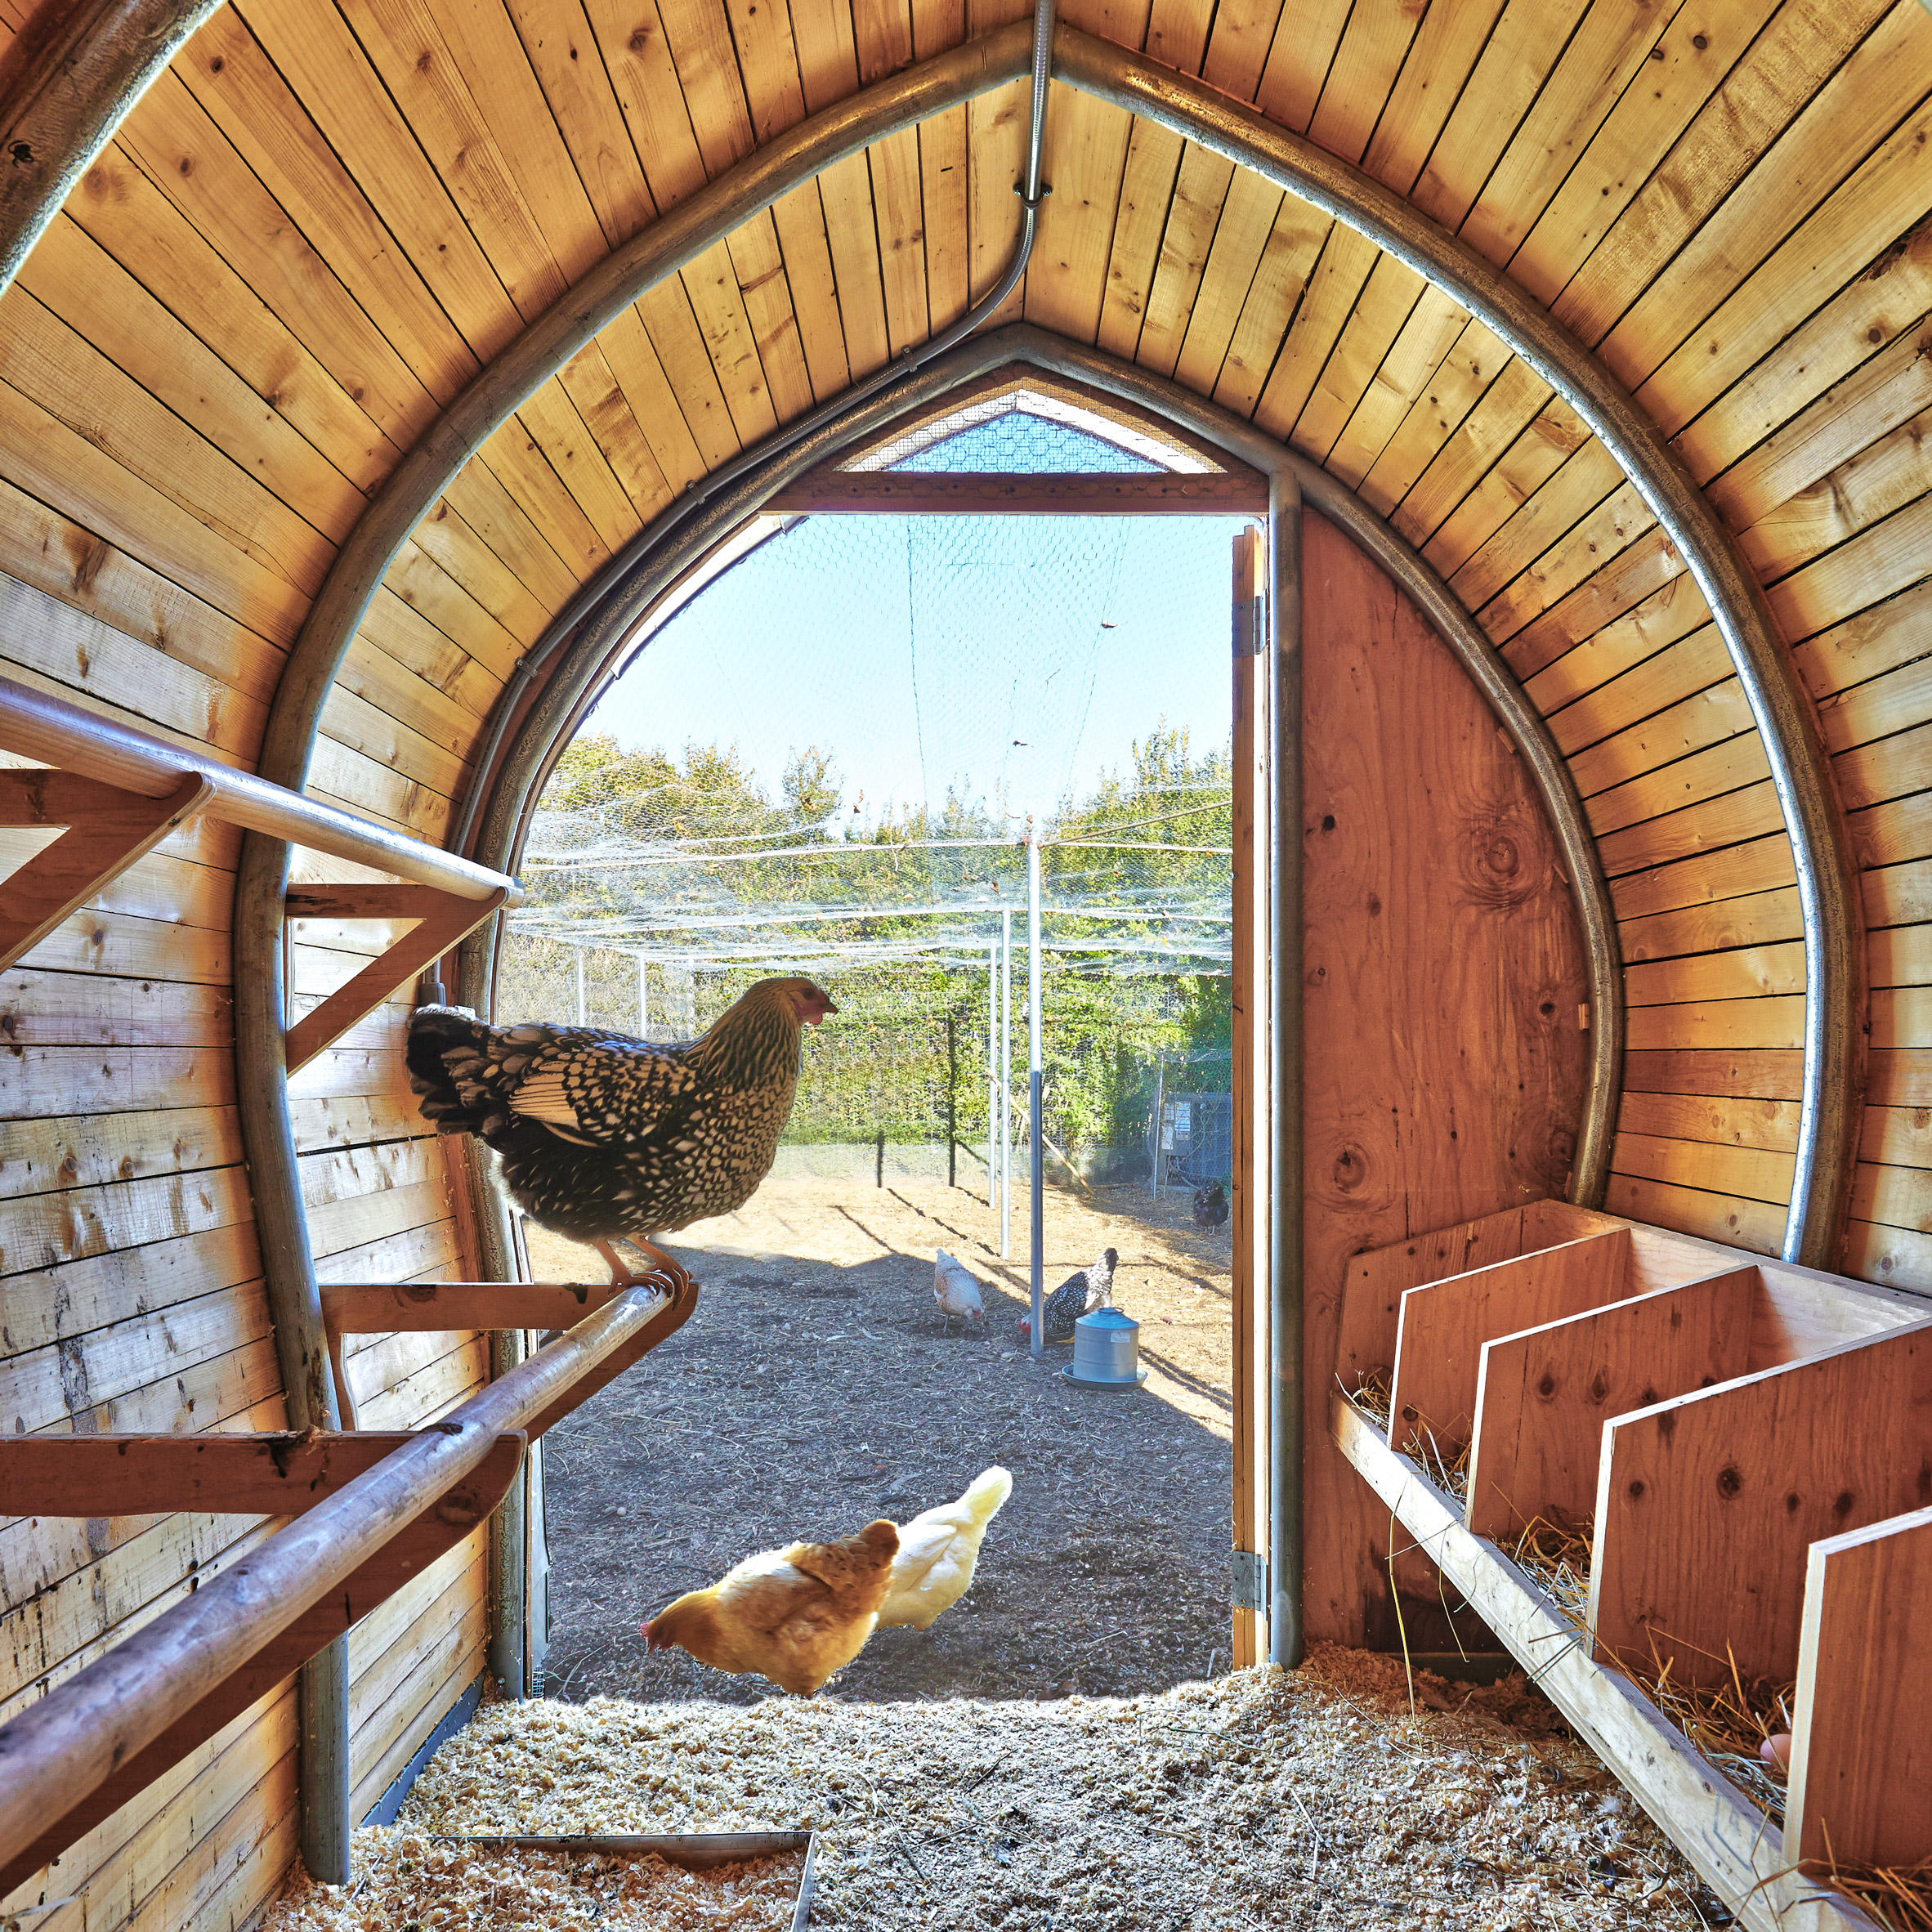 Sheffer Chicken Coop by Architecture Research Office